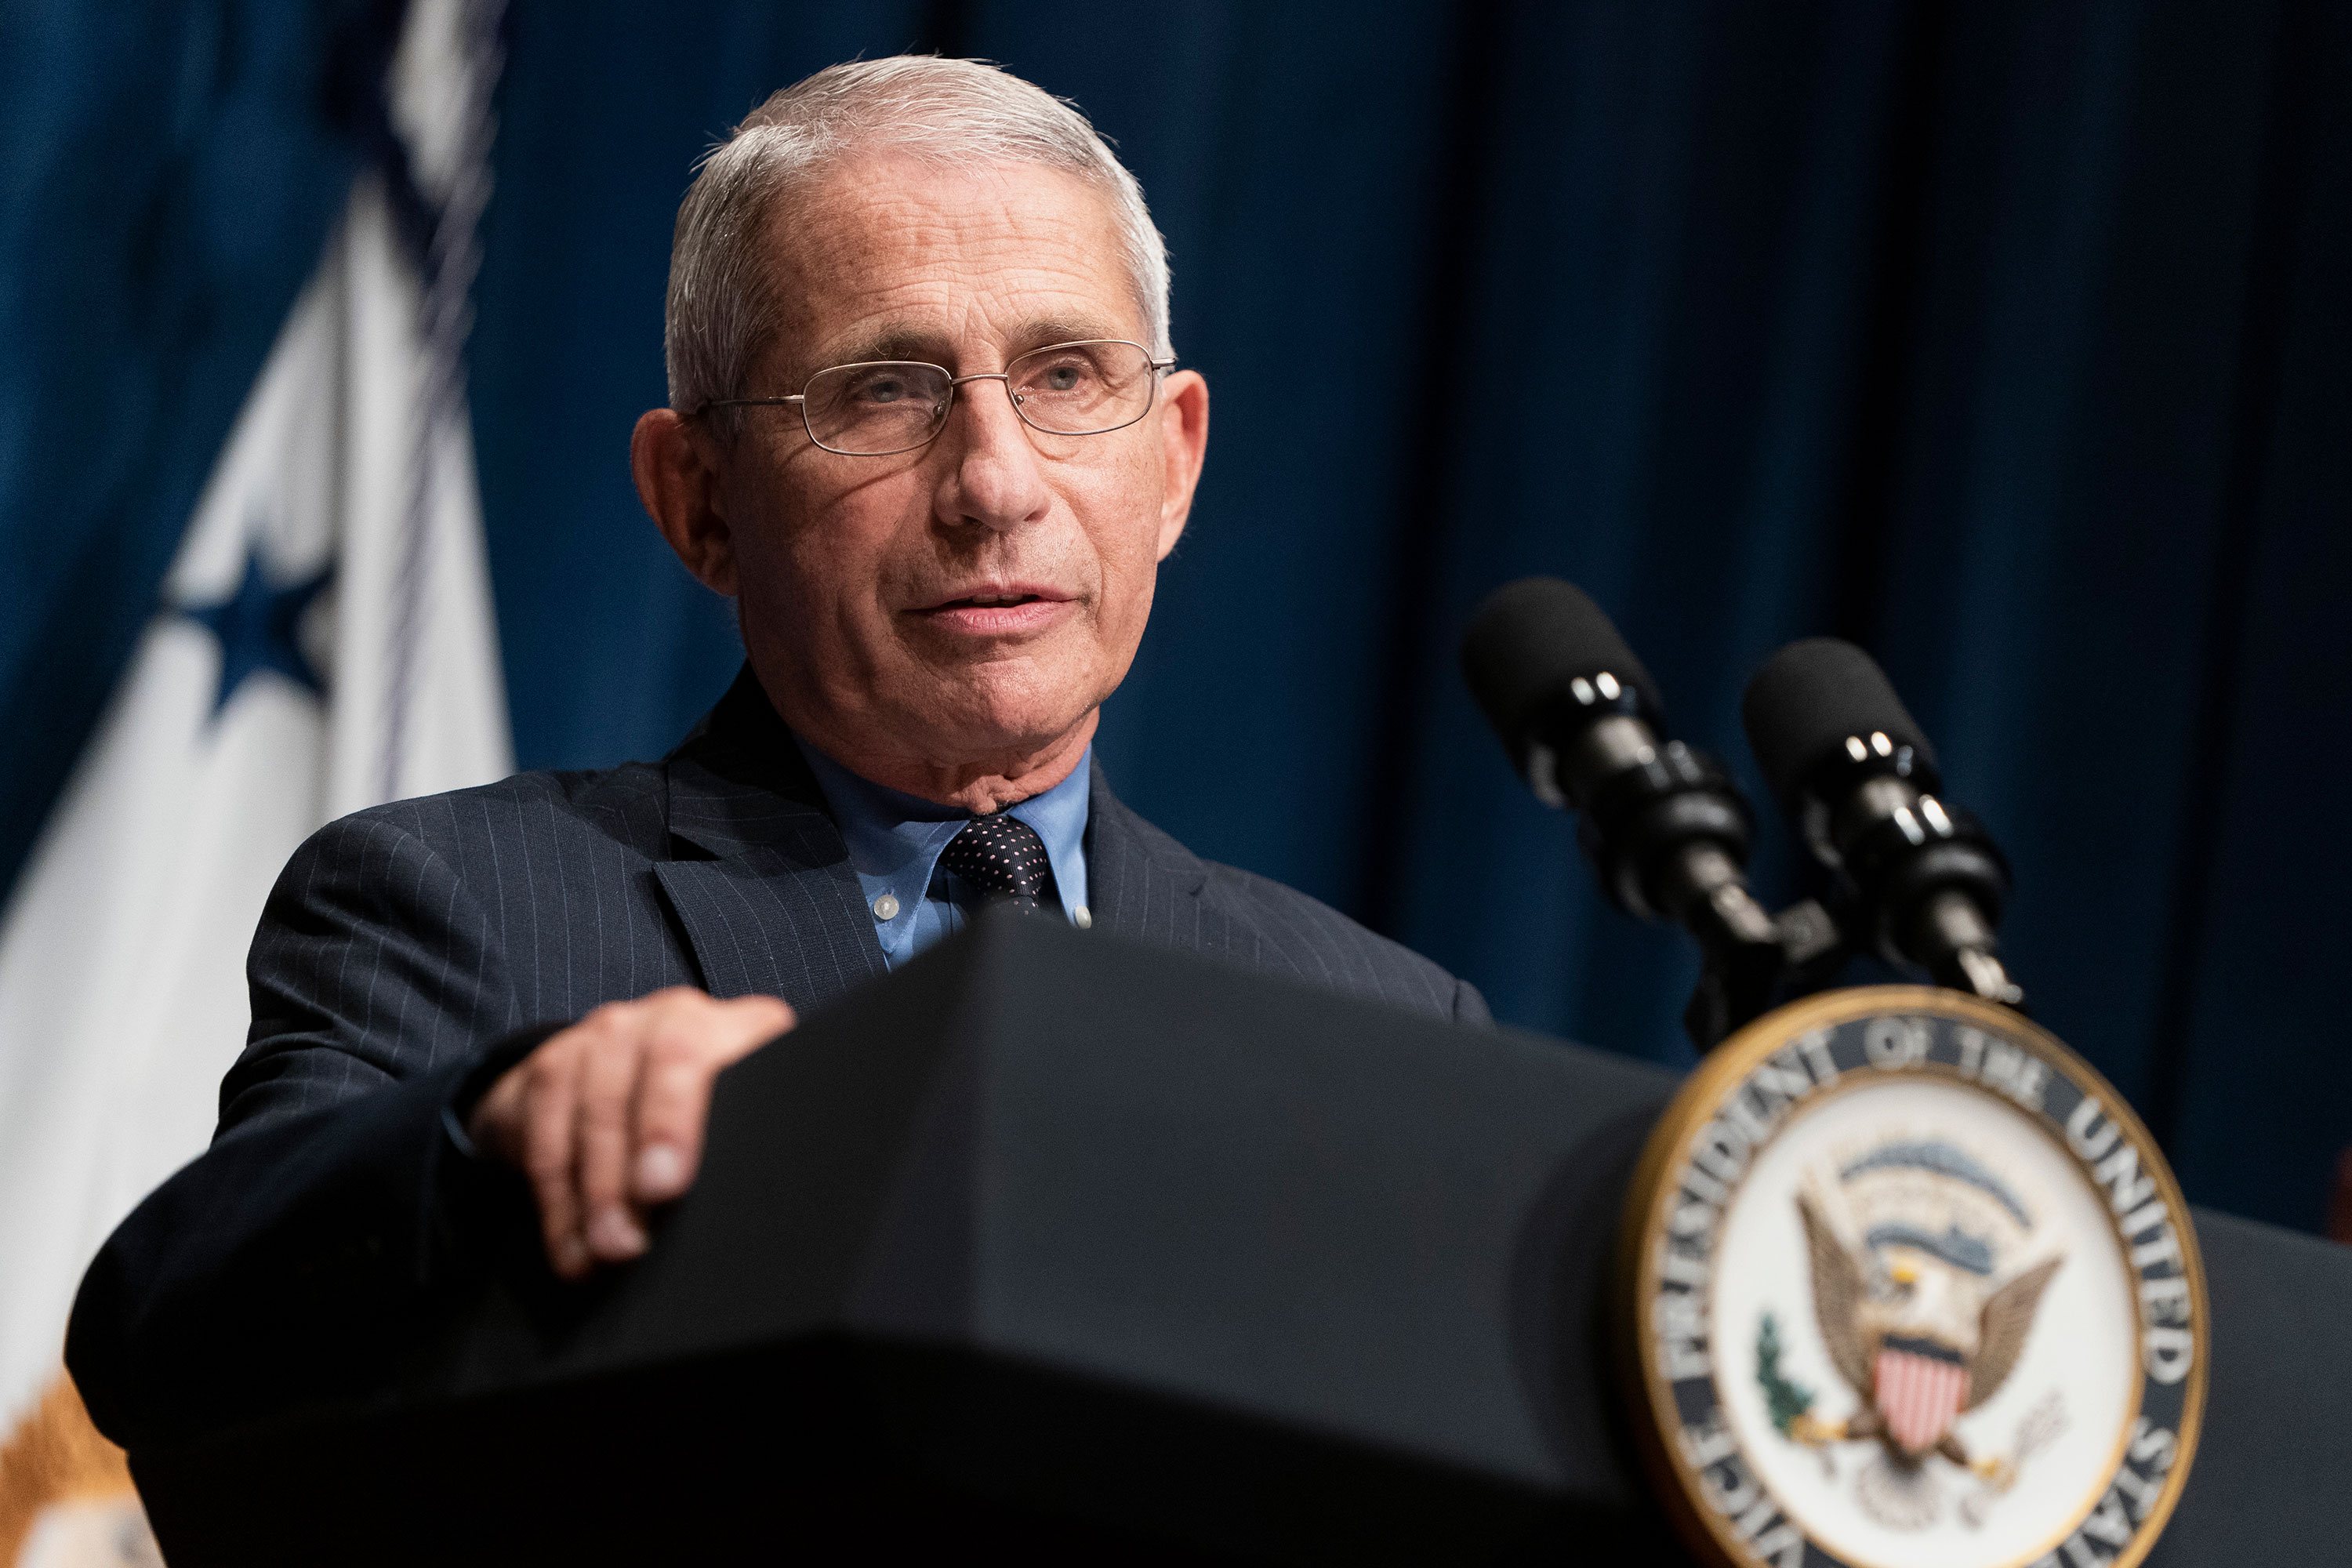 Dr. Anthony Fauci speaks after a White House Coronavirus Task Force briefing at the Department of Health and Human Services on June 26 in Washington, DC.